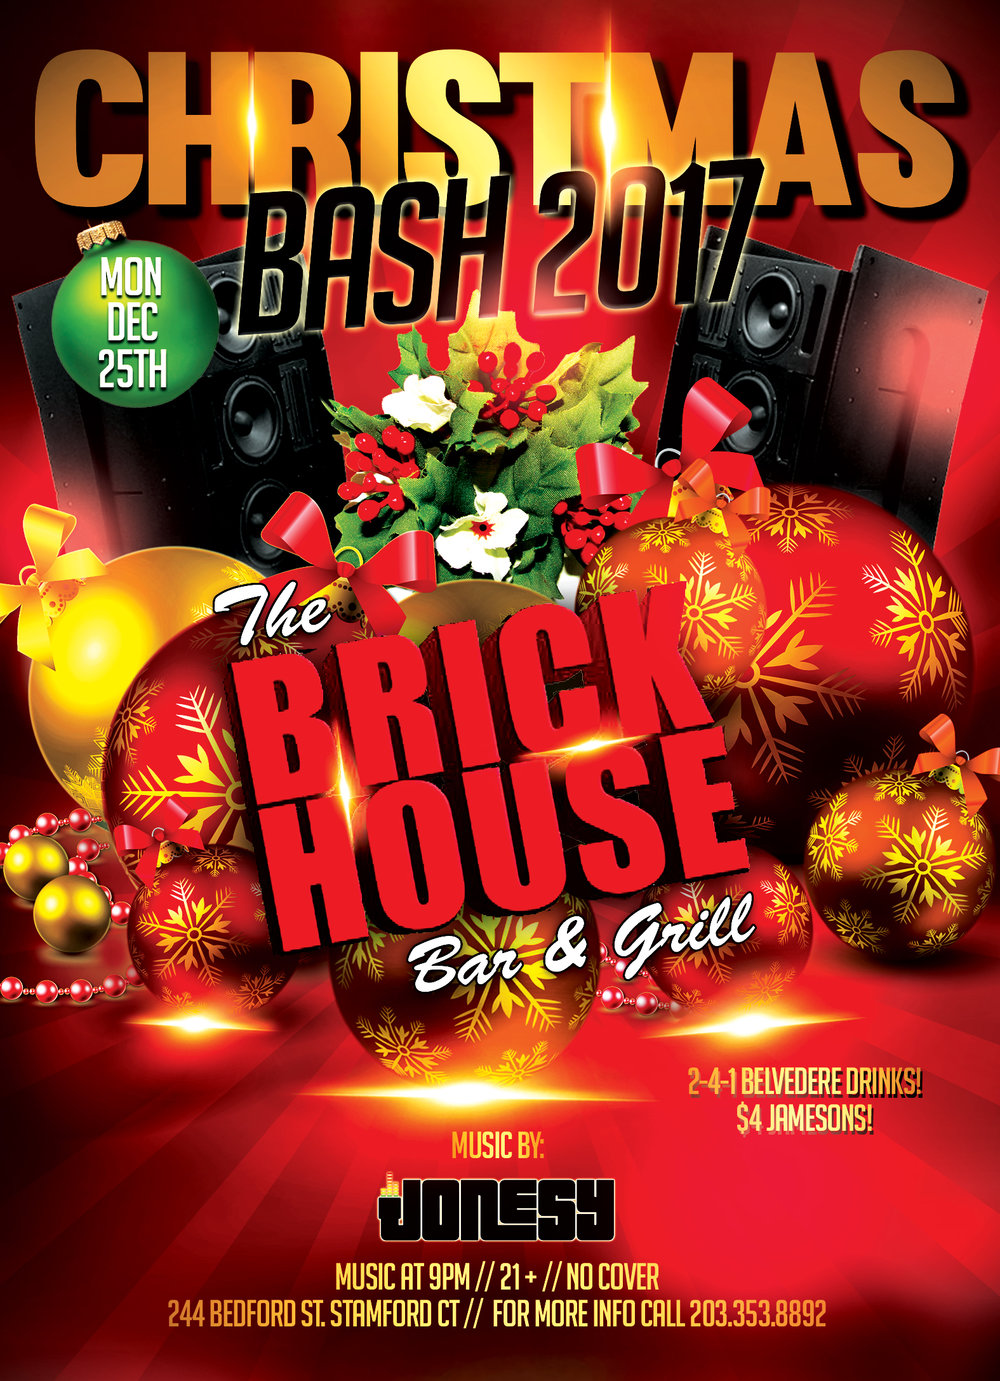 Christmas_Bash-brickhouse2017.jpg